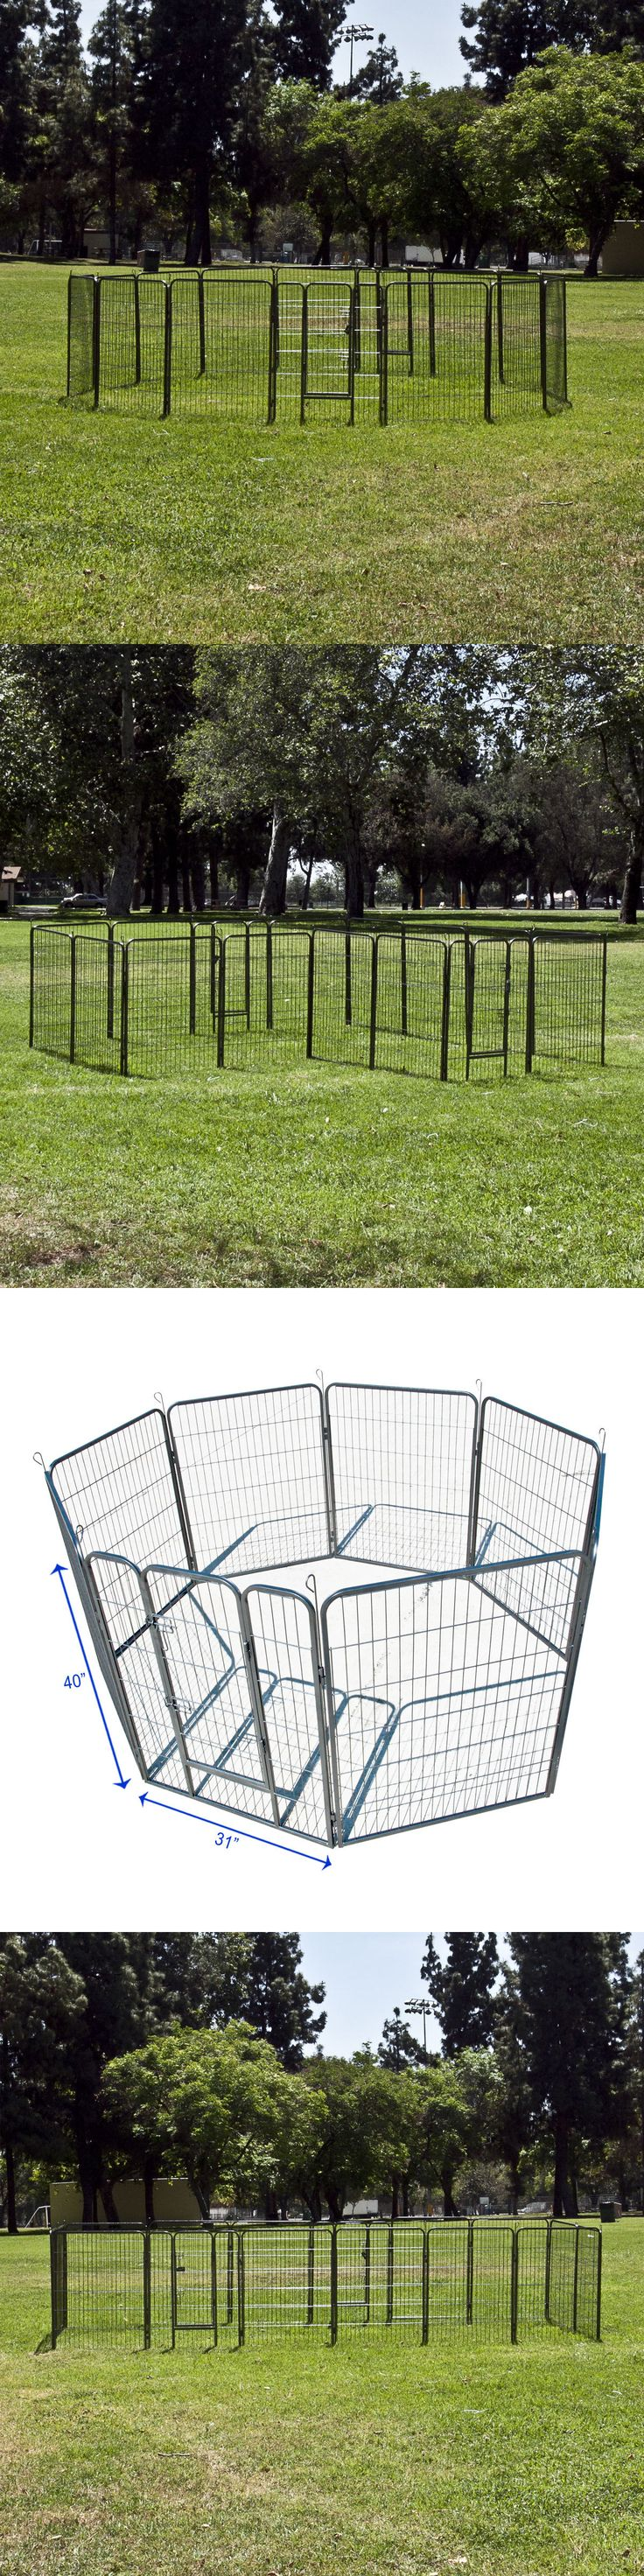 Fences and Exercise Pens 20748: Lot 2 Cage Pet Puppy Dog Run Barrier Fence Play Pen Kennel Steel Panel Playpen -> BUY IT NOW ONLY: $319.99 on eBay!